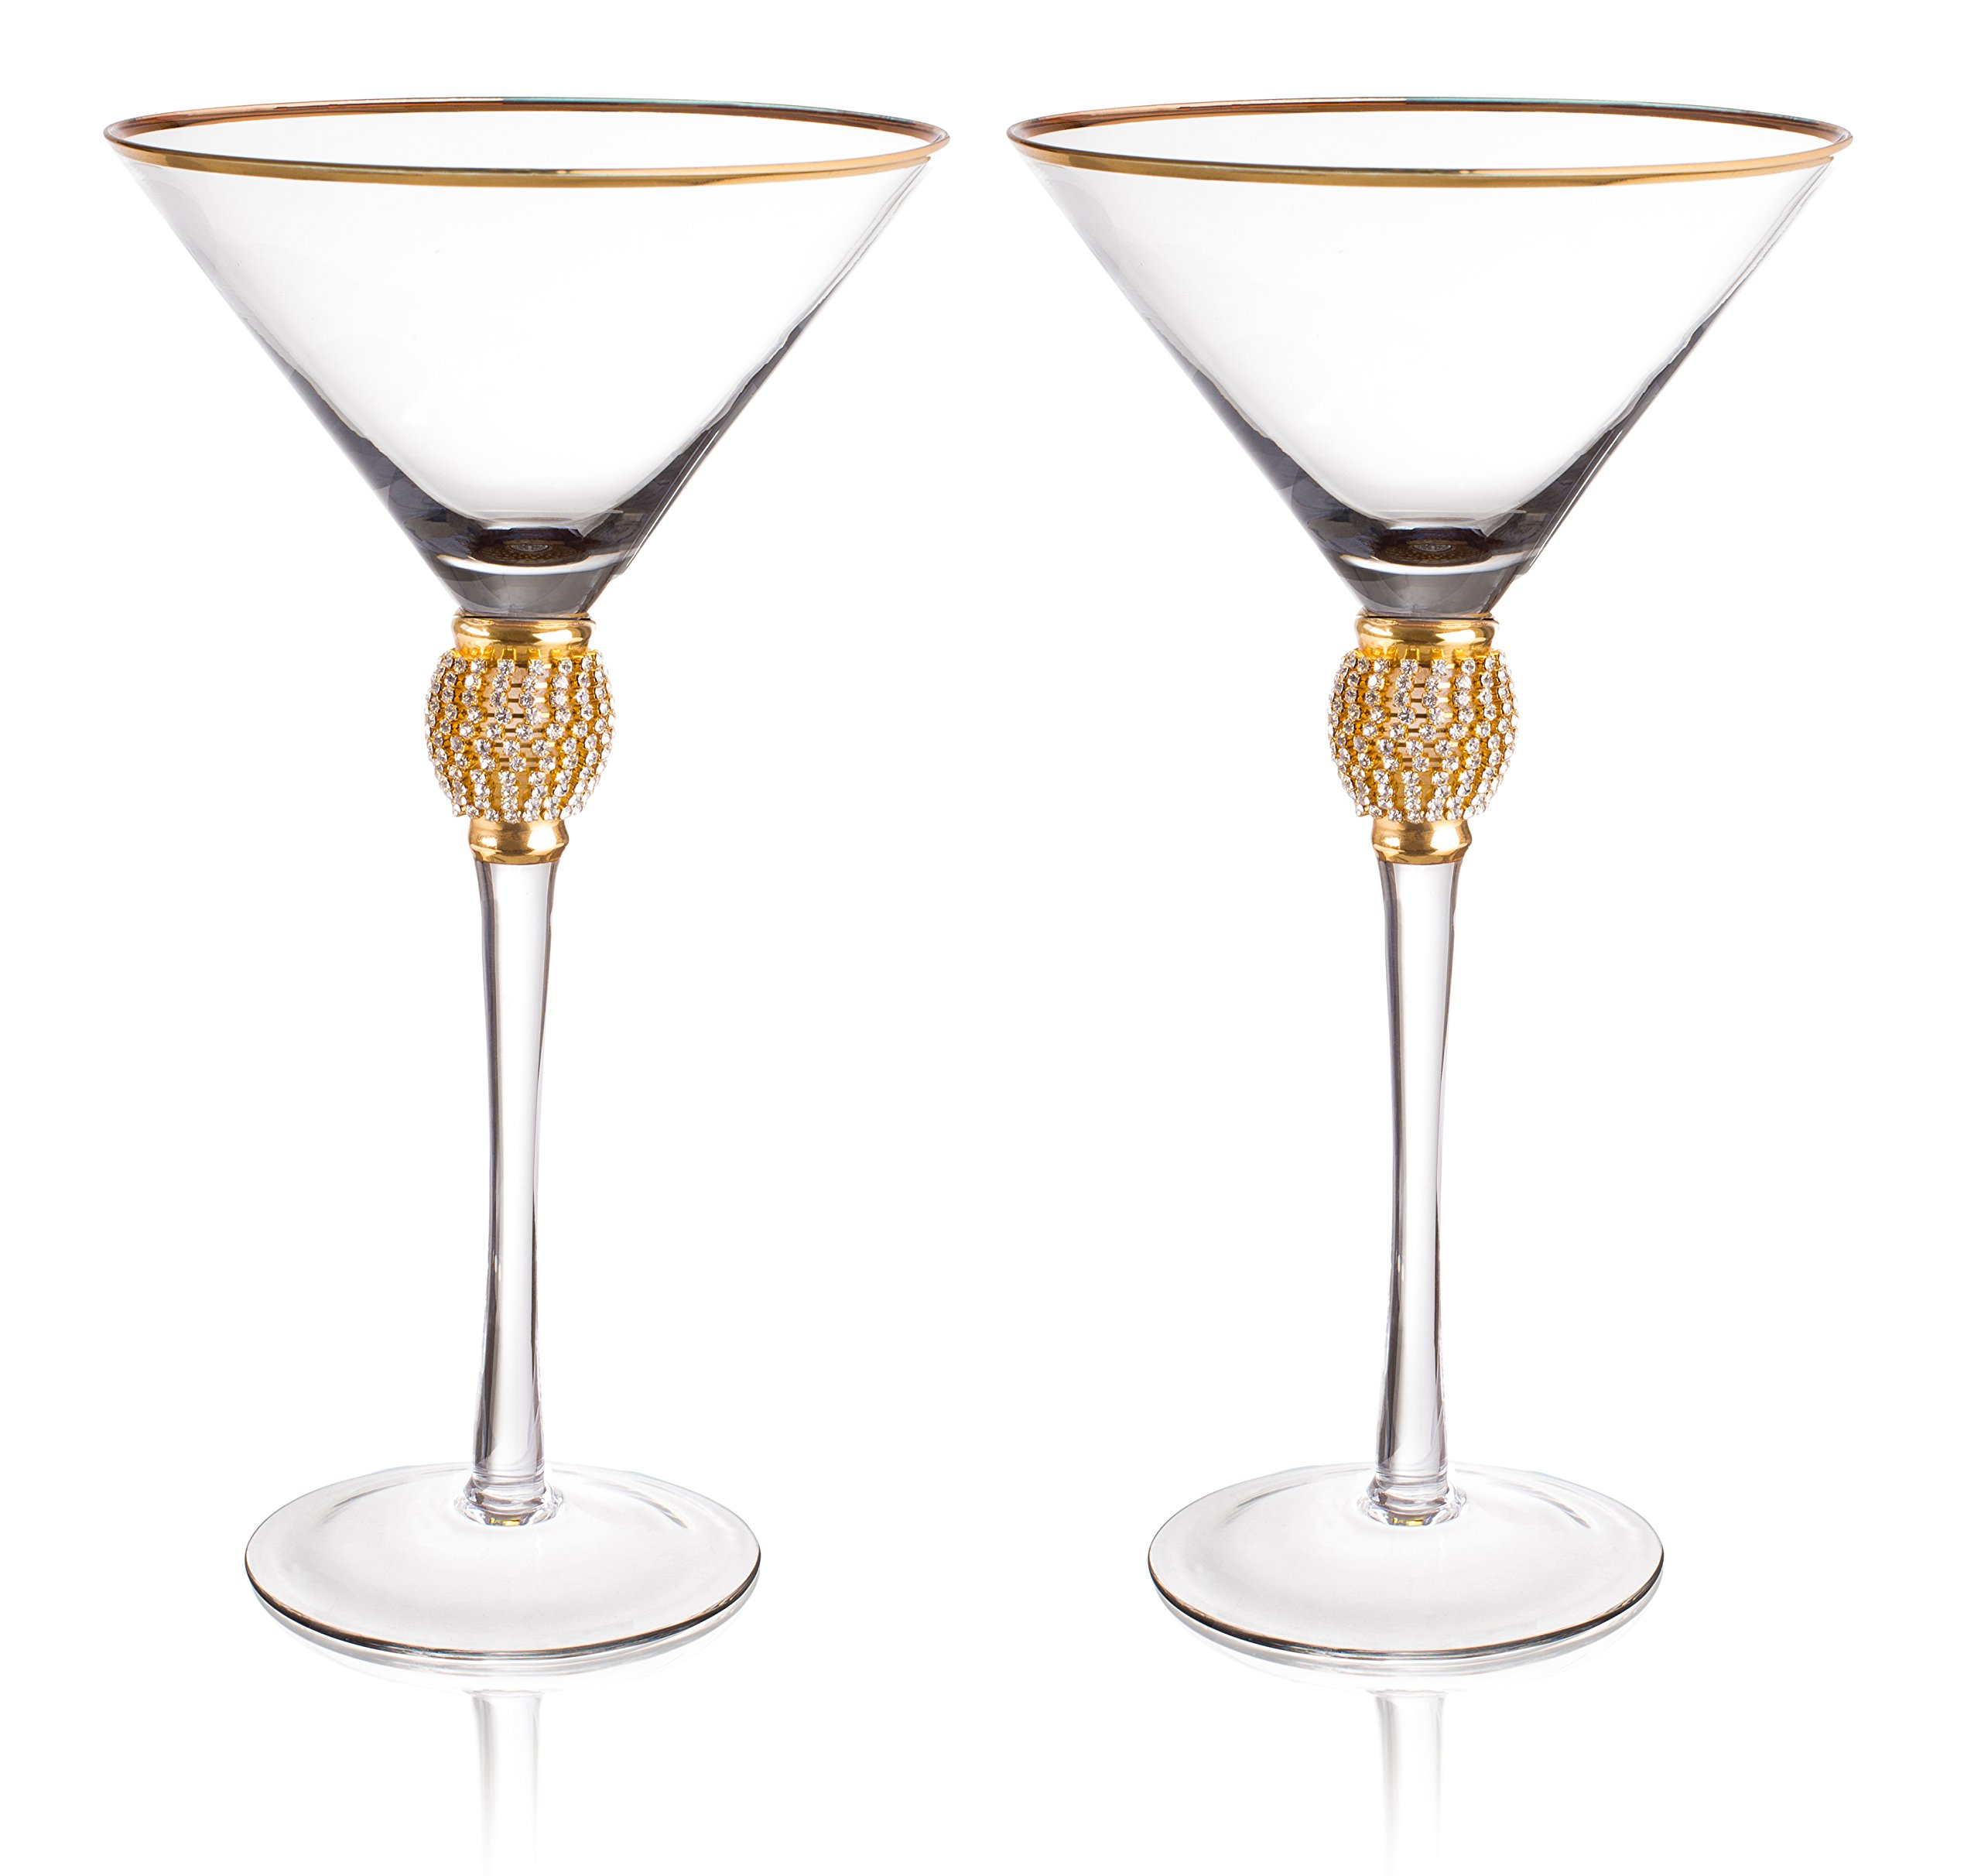 Trinkware Set of 2 Stemmed Martini Glasses - Rhinestone DIAMOND Studded With Gold Rim - Long Stem, 12oz, 9-inches Tall – Elegant Glassware And Stemware